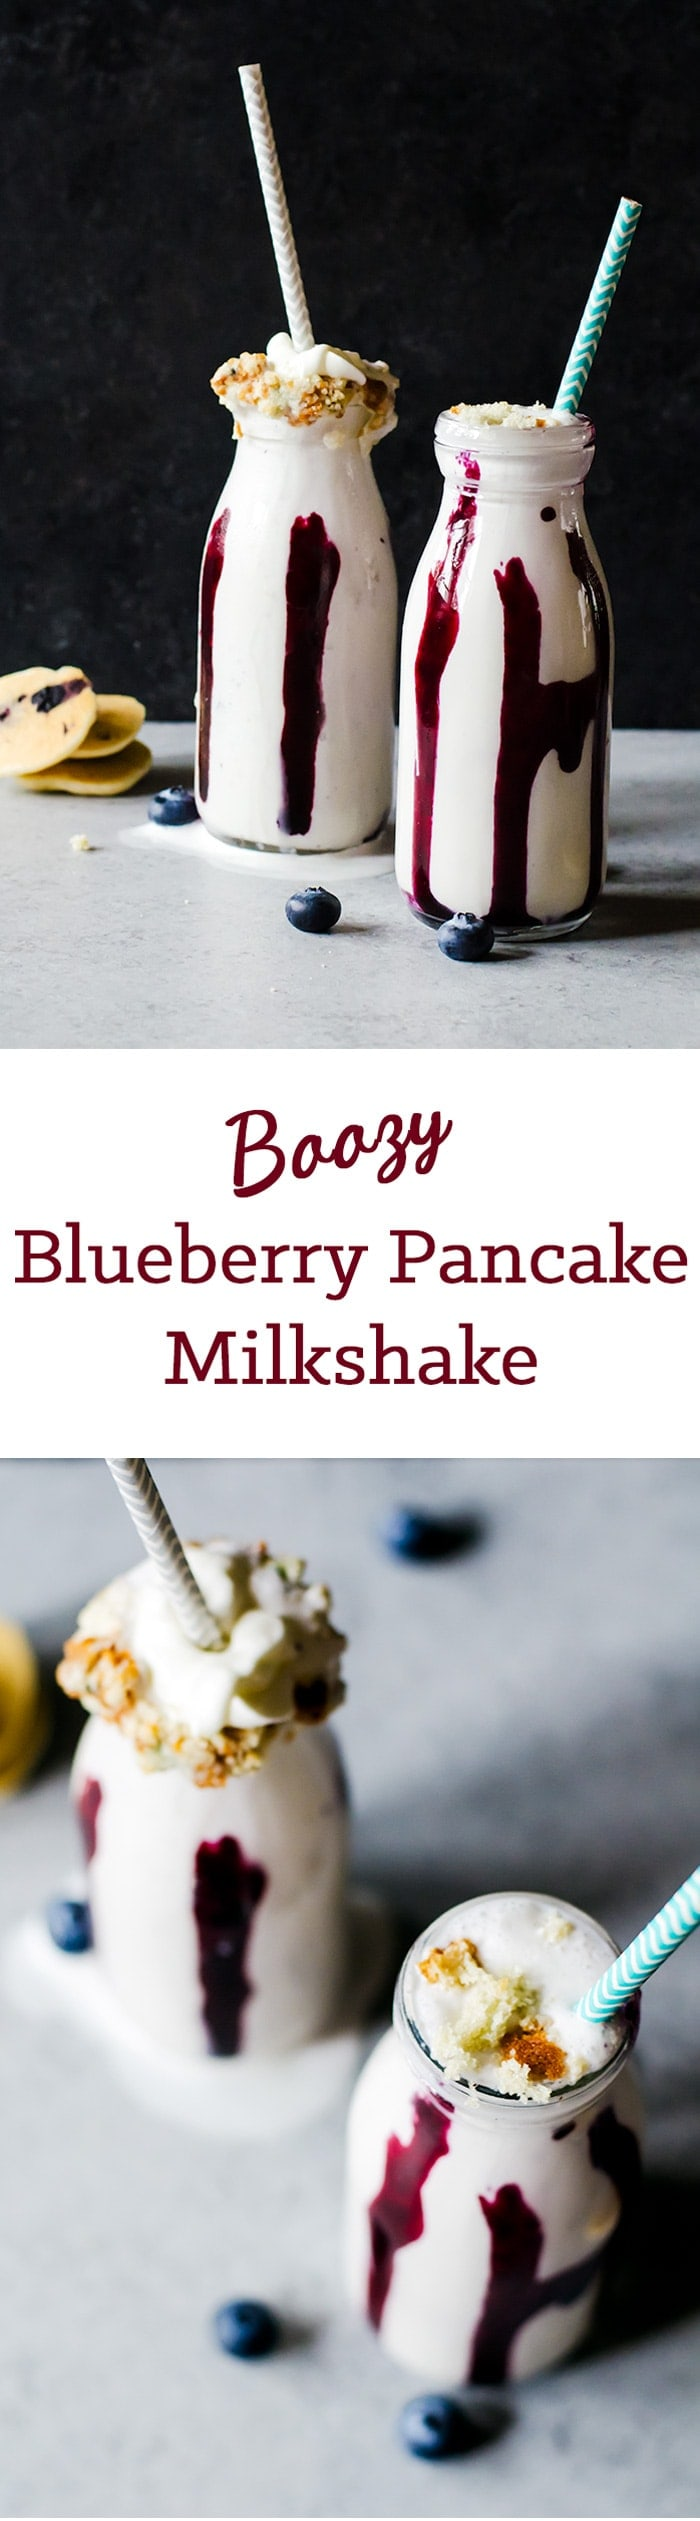 This boozy blueberry pancake milkshake tastes exactly like a blueberry pancake. Now have breakfast for dessert and have a little fun, too!